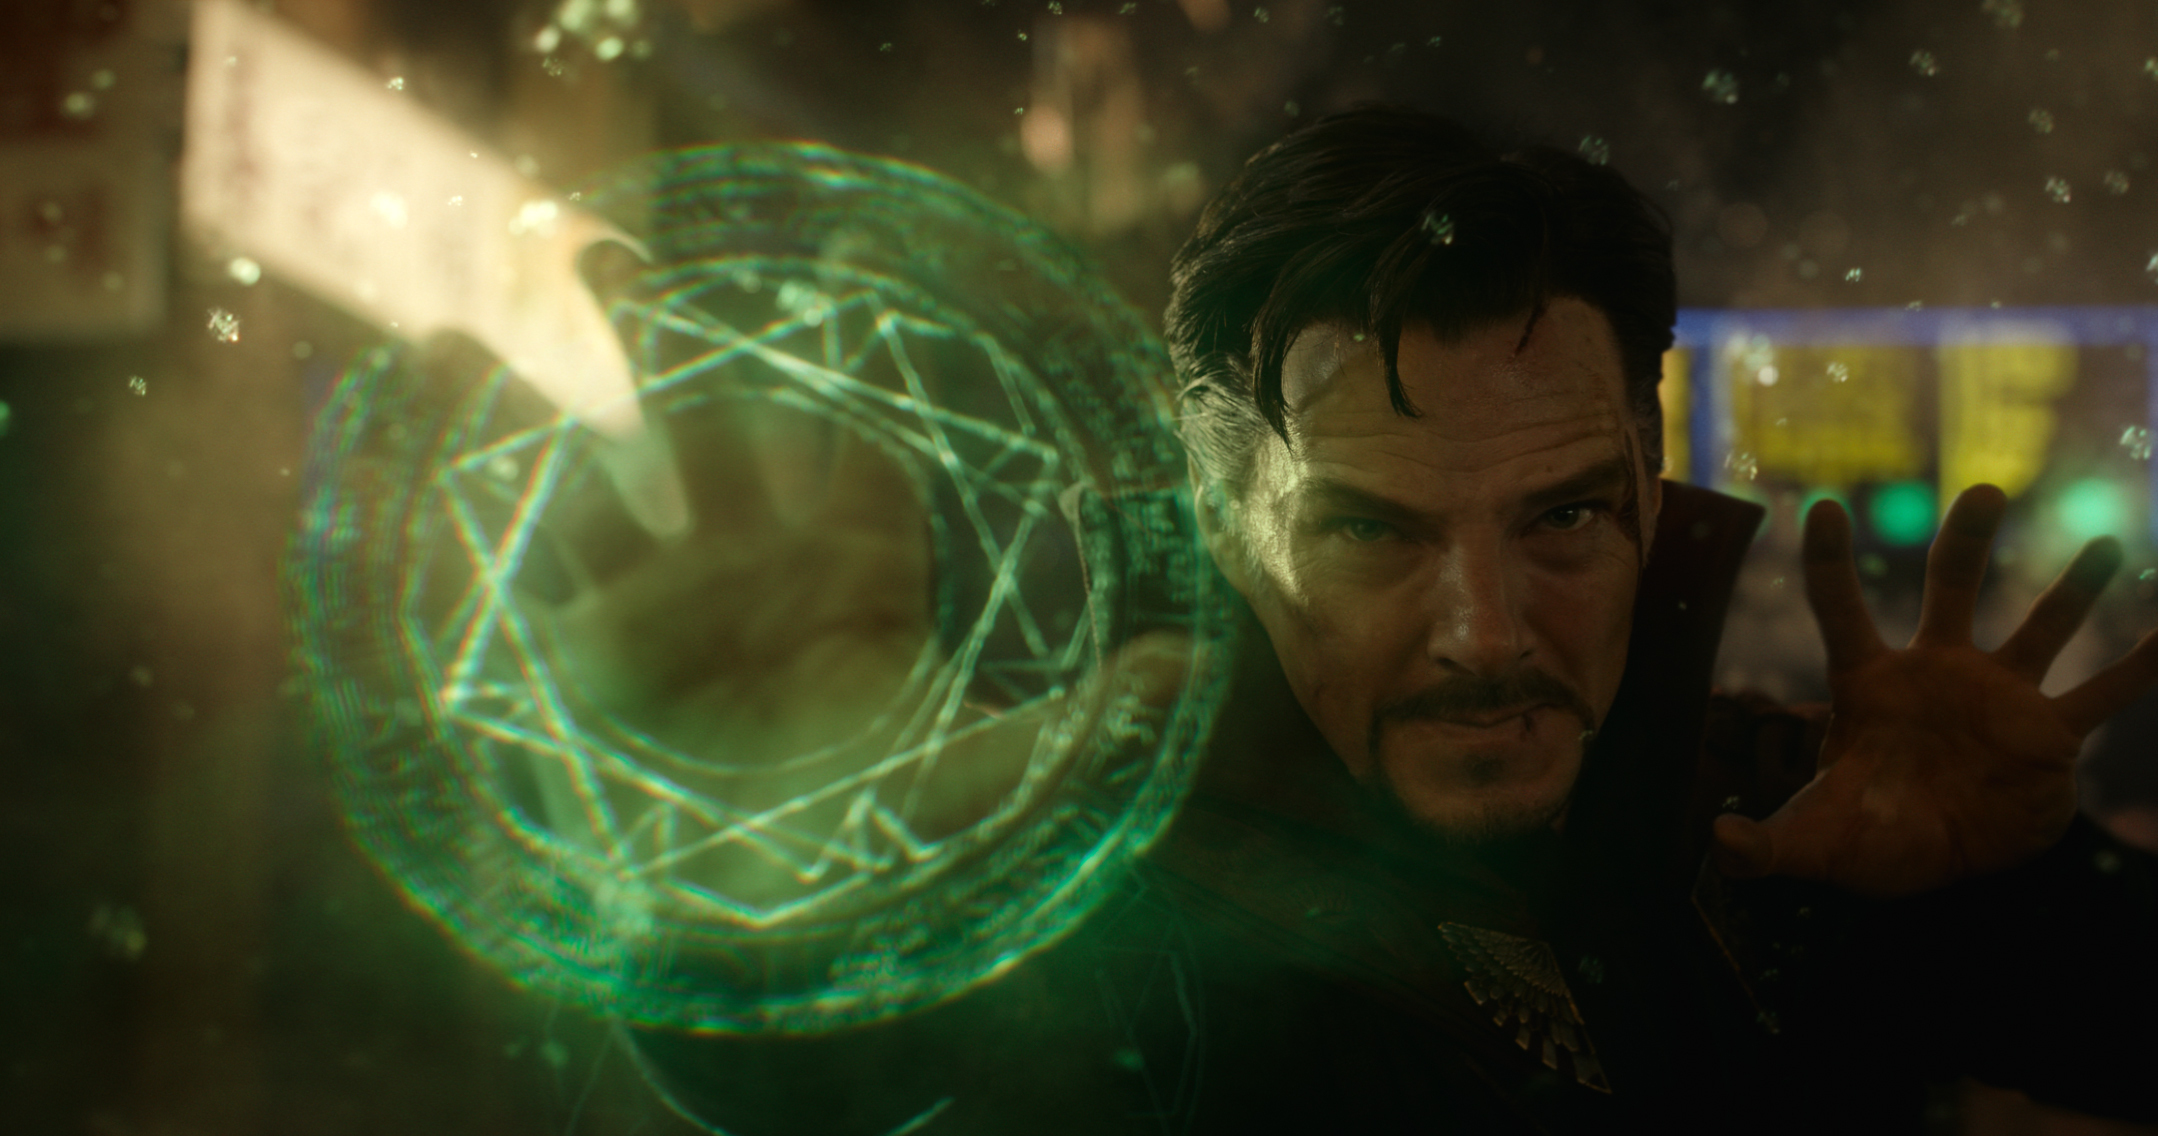 ap foto : ap : this image released by disney shows benedict cumberbatch in marvel's doctor strange, in theaters on november 4. (disney/marvel via ap) one time use only. no cropping of image. ap provides access to this handout photo to be used solely to illustrate news reporting or commentary on the facts or events depicted in this image. this image may be used only for 14 days from the time of transmi film fall previe automatarkiverad